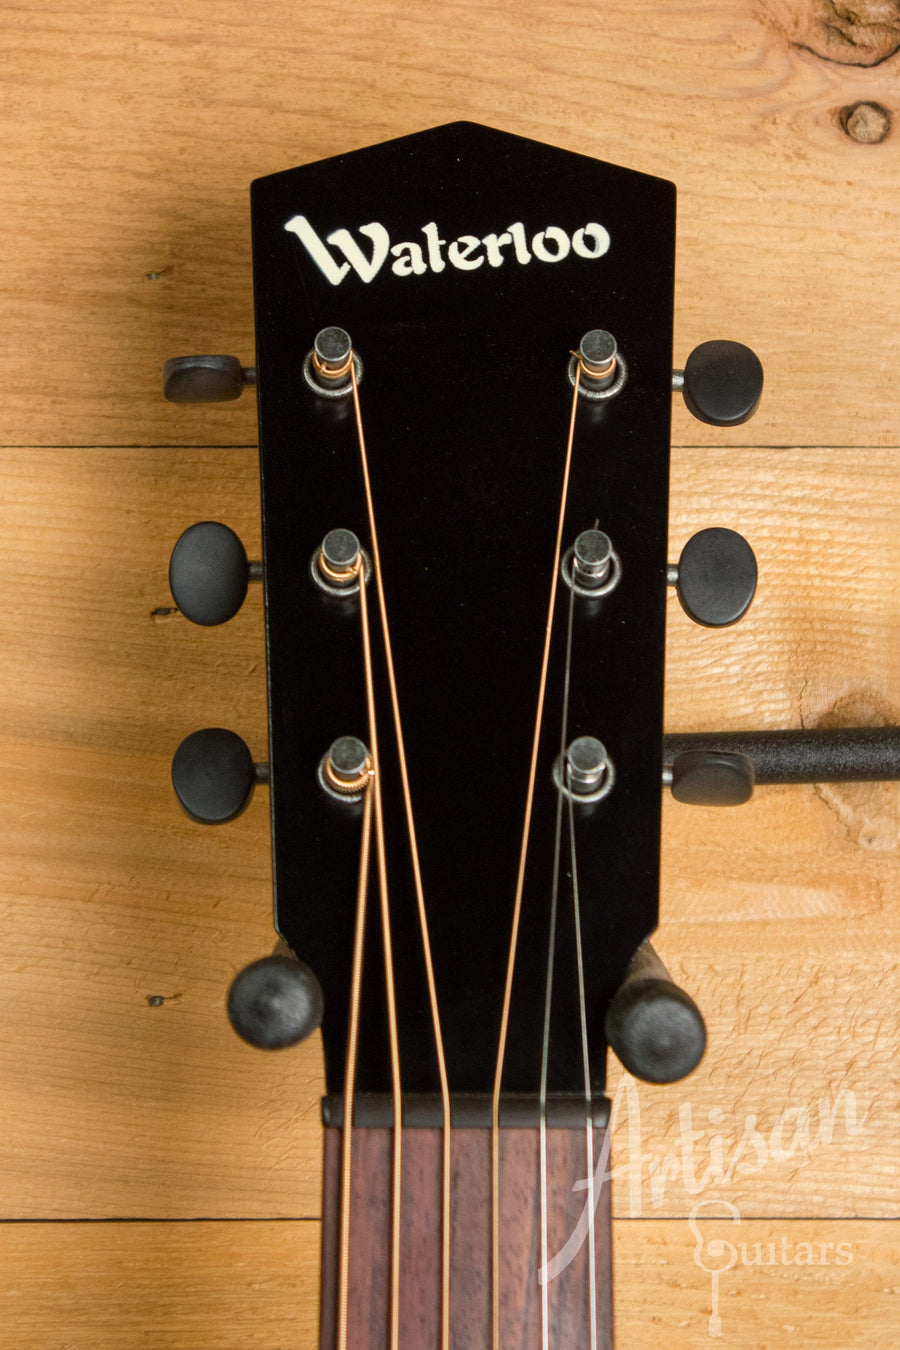 Waterloo WL-14X Guitar with Truss Rod with Sunburst Finish ID-11220 - Artisan Guitars